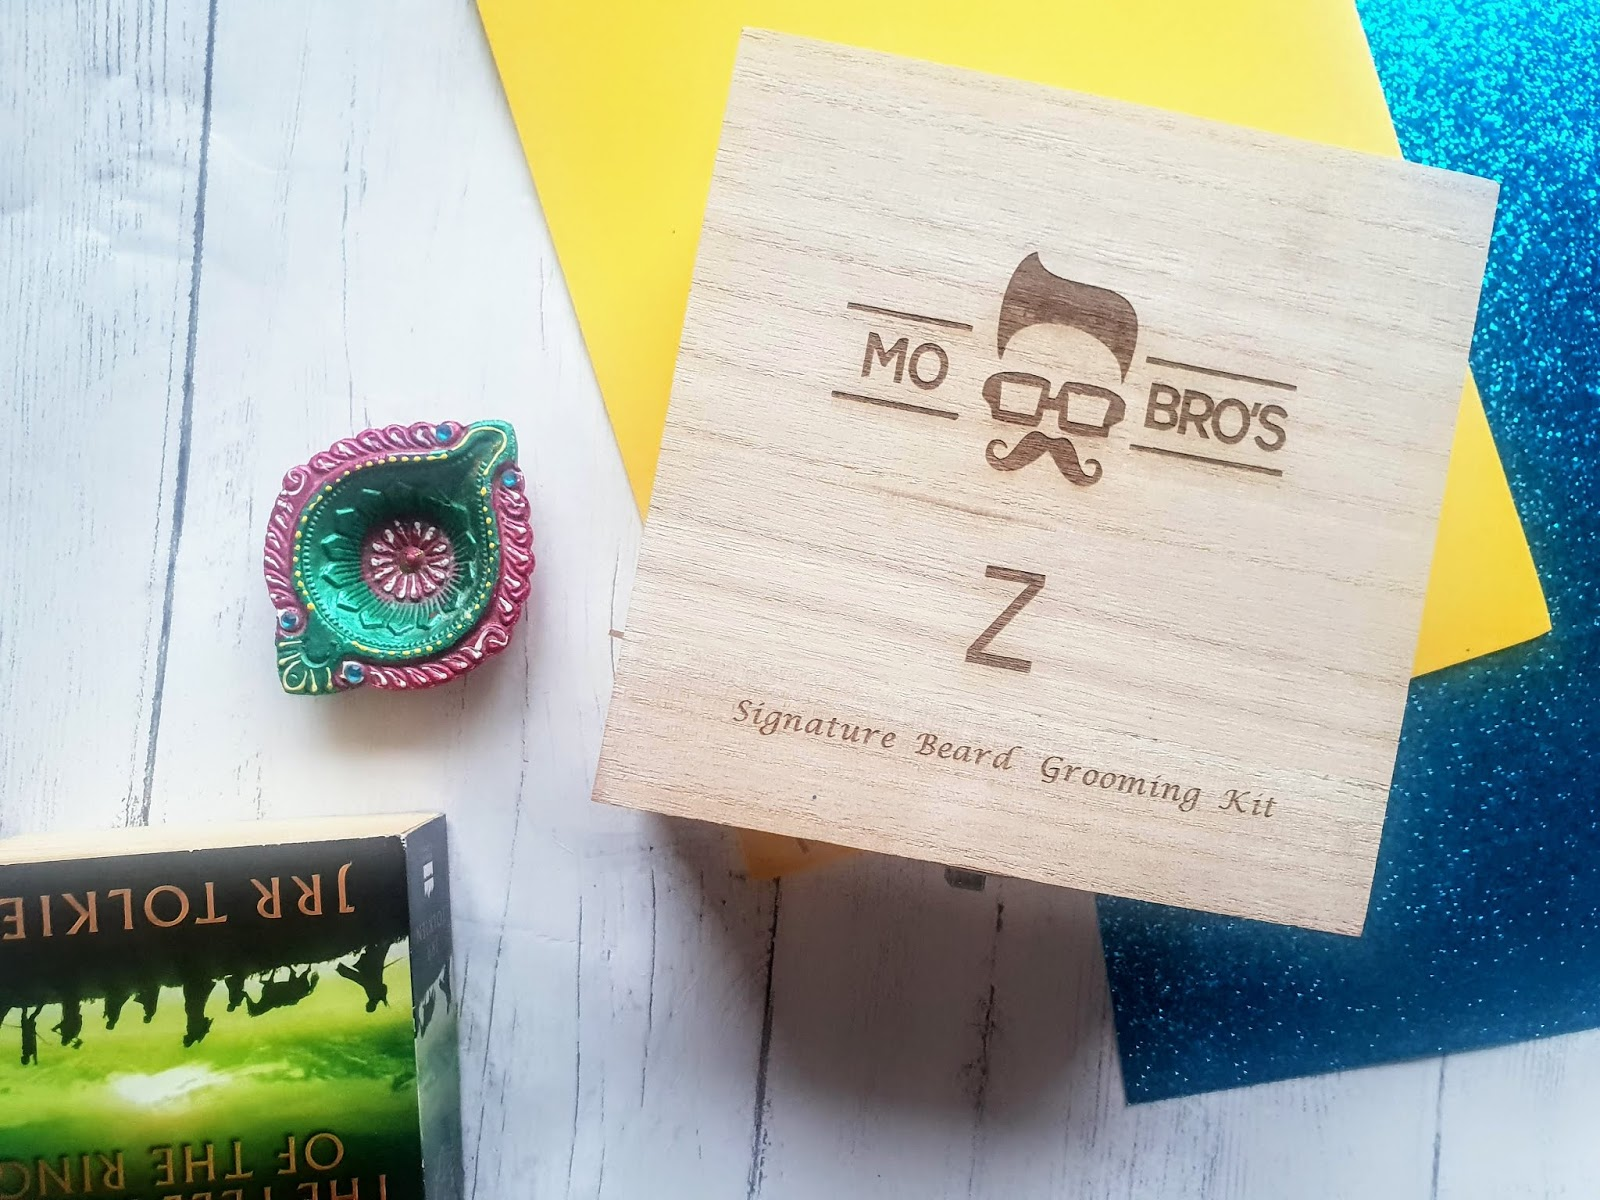 Mo Bro's Signature Wooden Box Collection